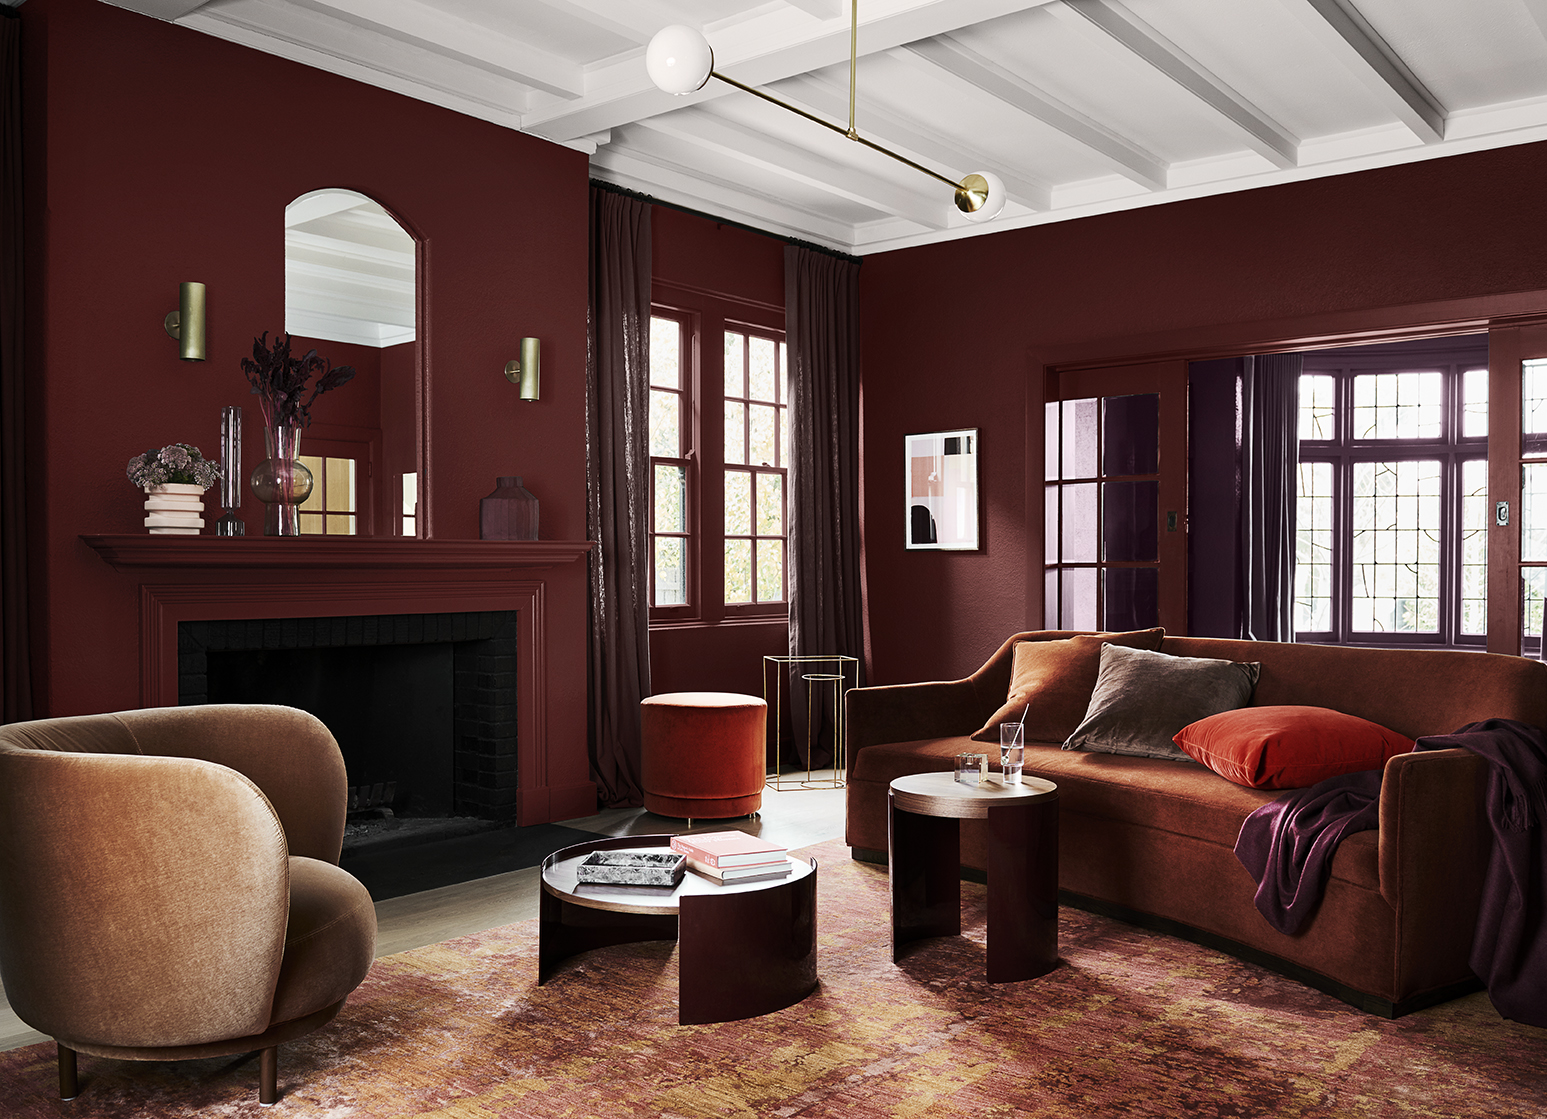 Styling by Bree Leech, Photographer Lisa Cohen.  Wall in Dulux Henna Red  Artwork on wall: Lilac Moon IV, original print by Ellie Malin,  Modern Times